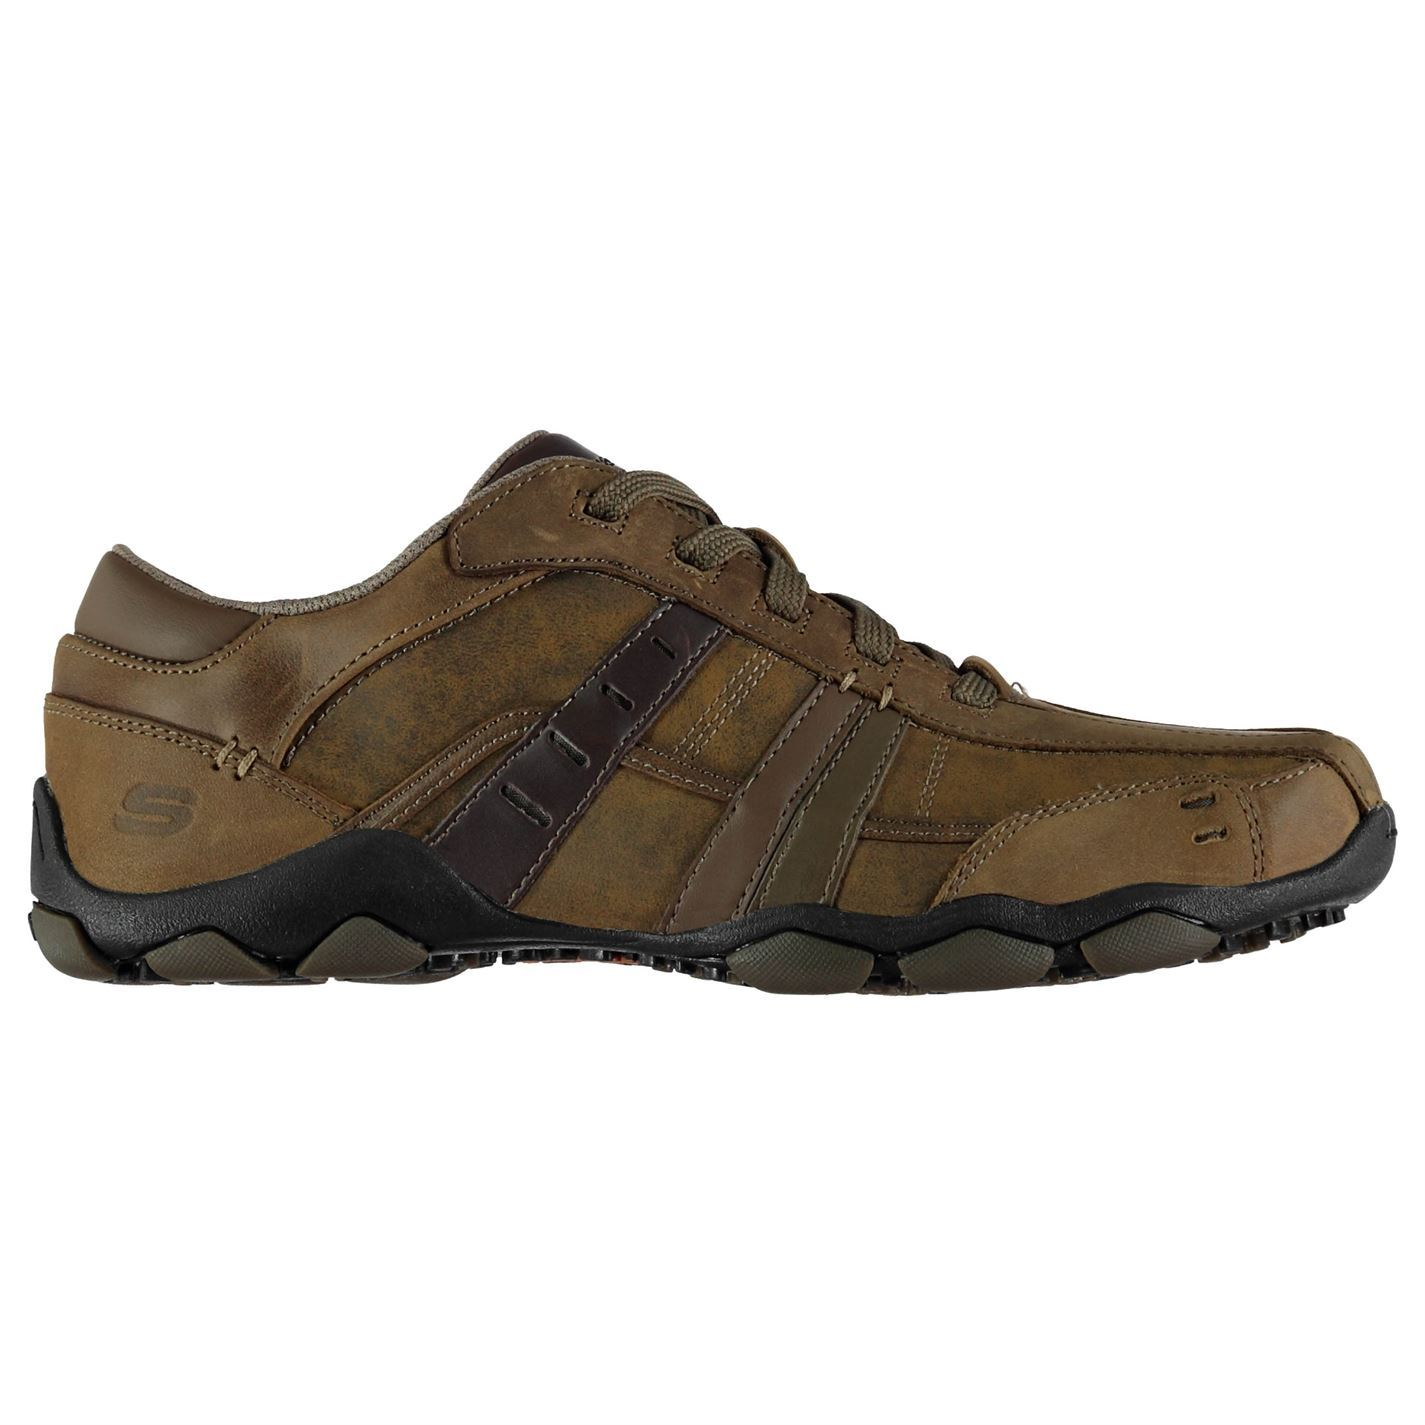 Skechers Everyday Diameter Vasse Schuhes  Uomo Gents Everyday Skechers Laces Fastened Padded Ankle 020b46